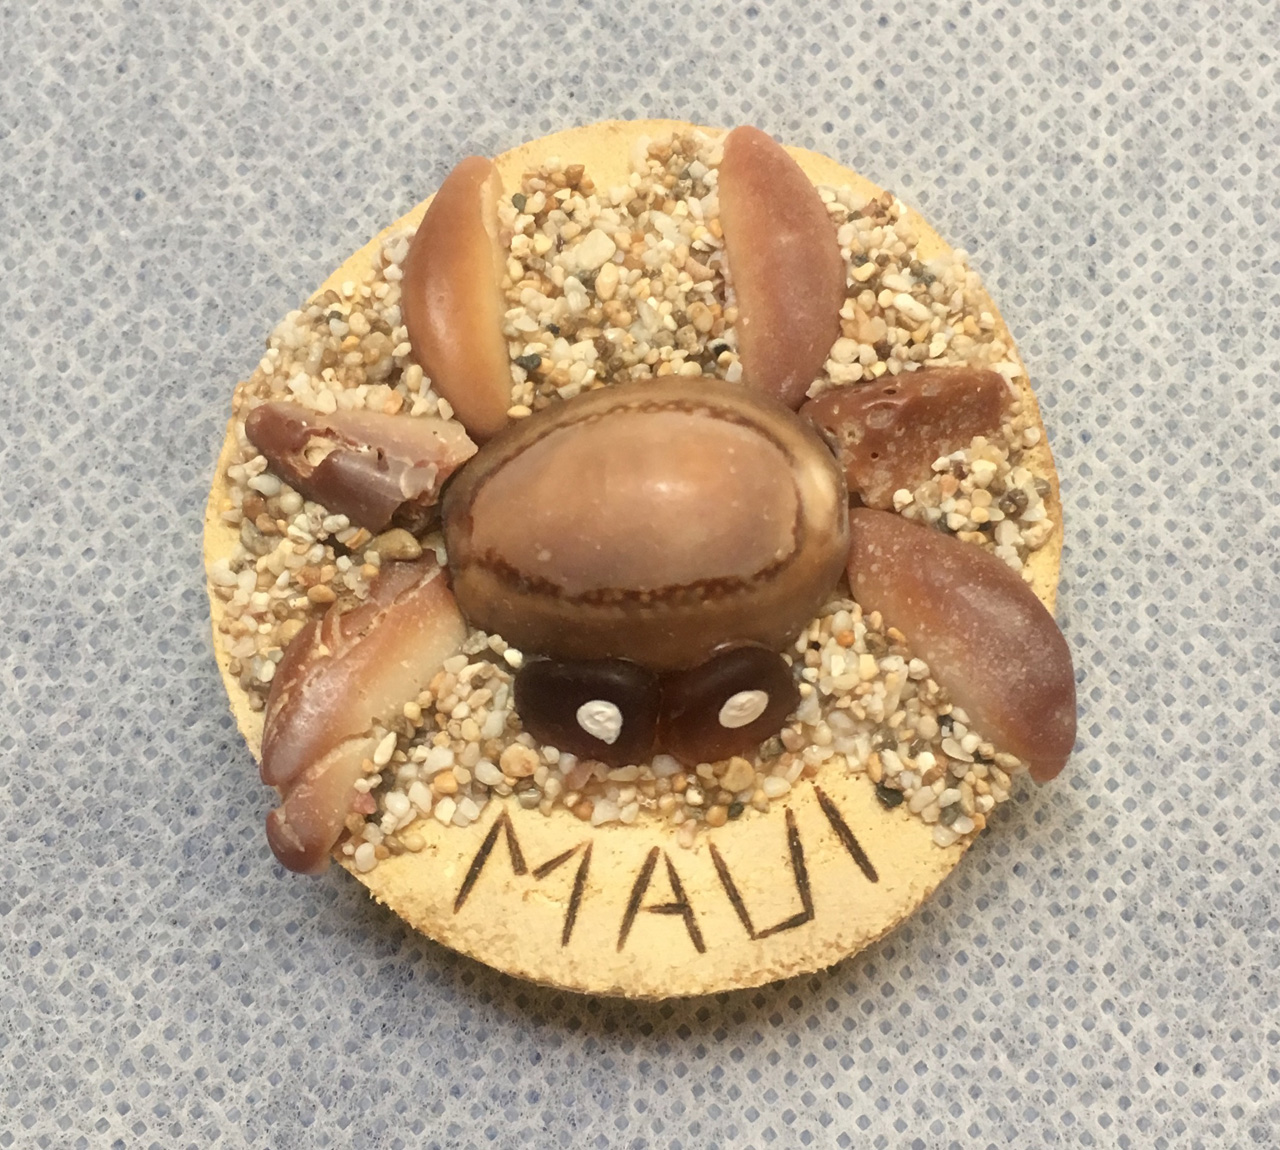 Beach Treasure Crab Magnet by Richard Jordan with maui written on it